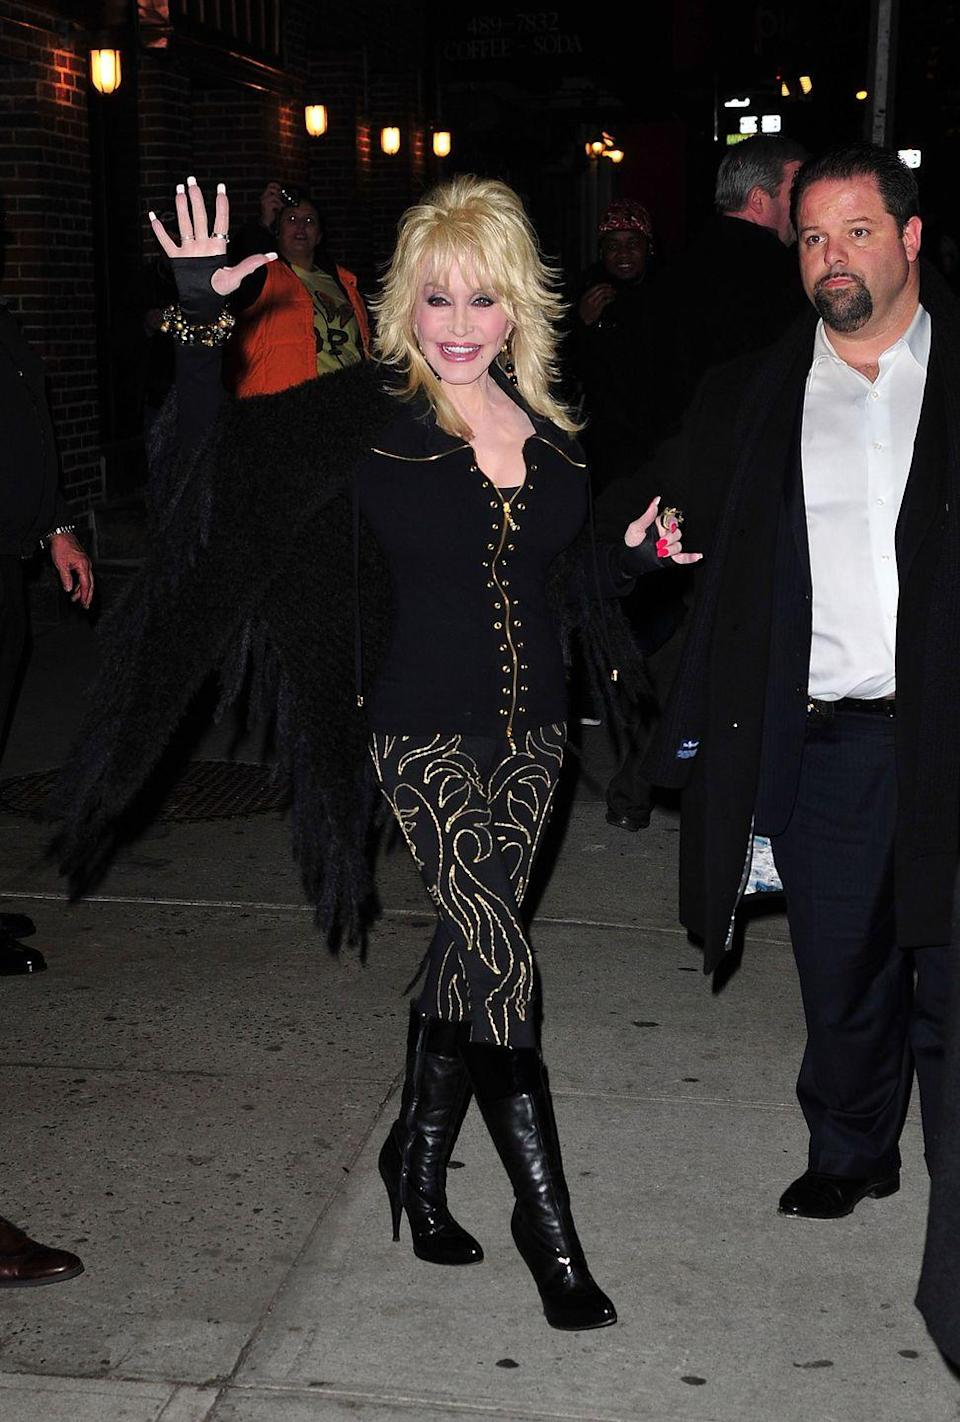 <p>We don't see Dolly wearing this color often, but when she does, she makes sure to do so with her bedazzled flair. A fringe jacket, gold jewelry, and black pants with gold designs ensure she is as glitzy as ever—even in black. </p>